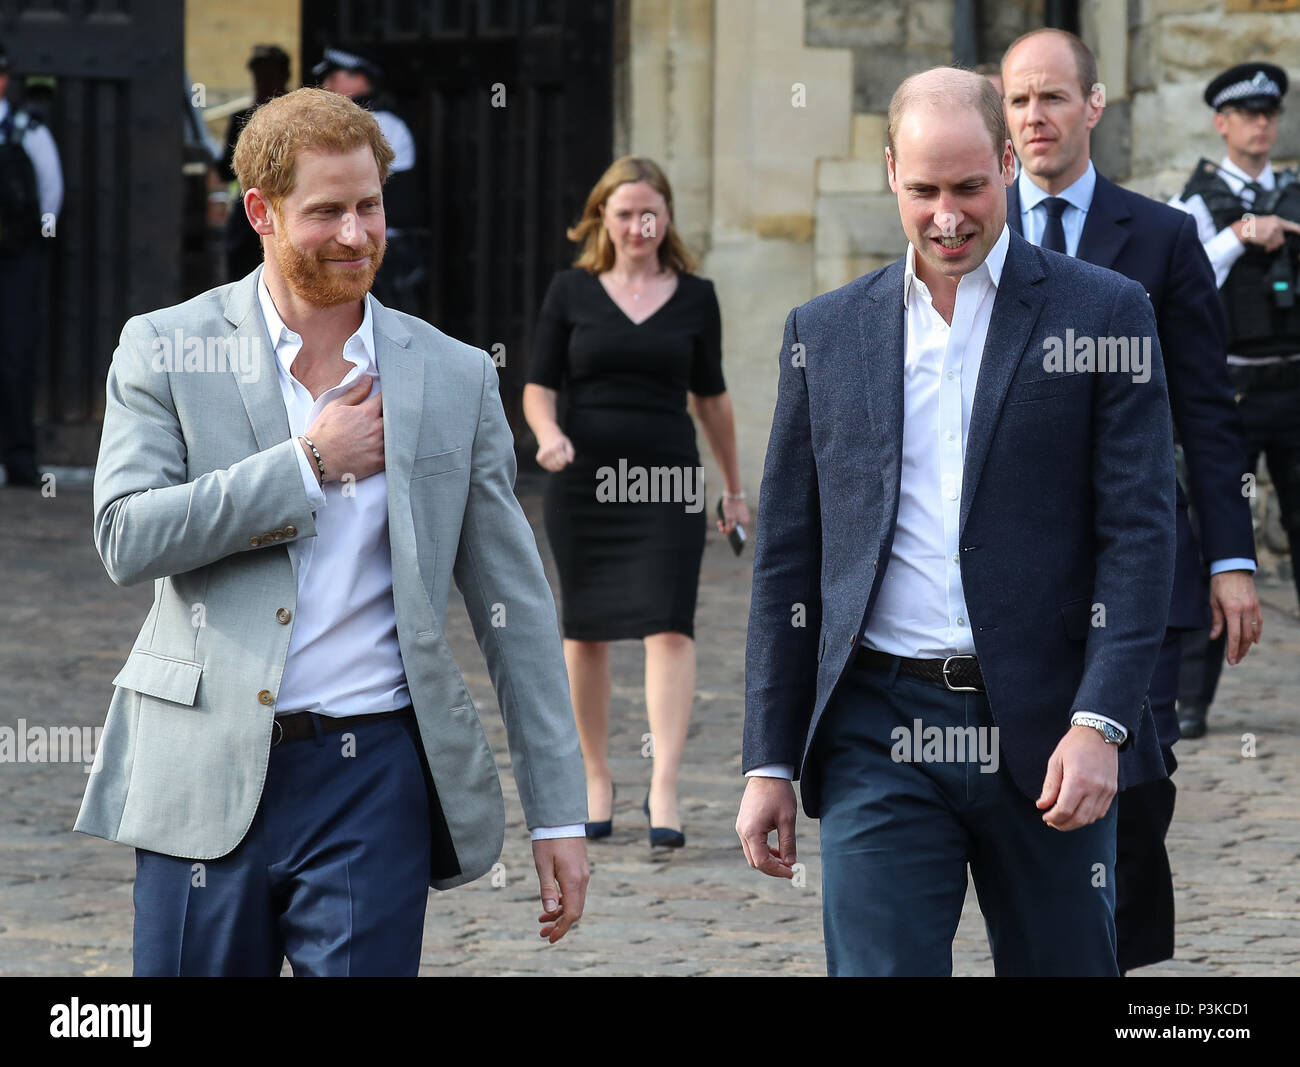 Prince Harry and Prince William greet the crowds outside Windsor Castle on the evening before Prince Harry's wedding to Meghan Markle  Featuring: Prince Harry, Prince William Where: Windsor, United Kingdom When: 18 May 2018 Credit: John Rainford/WENN - Stock Image